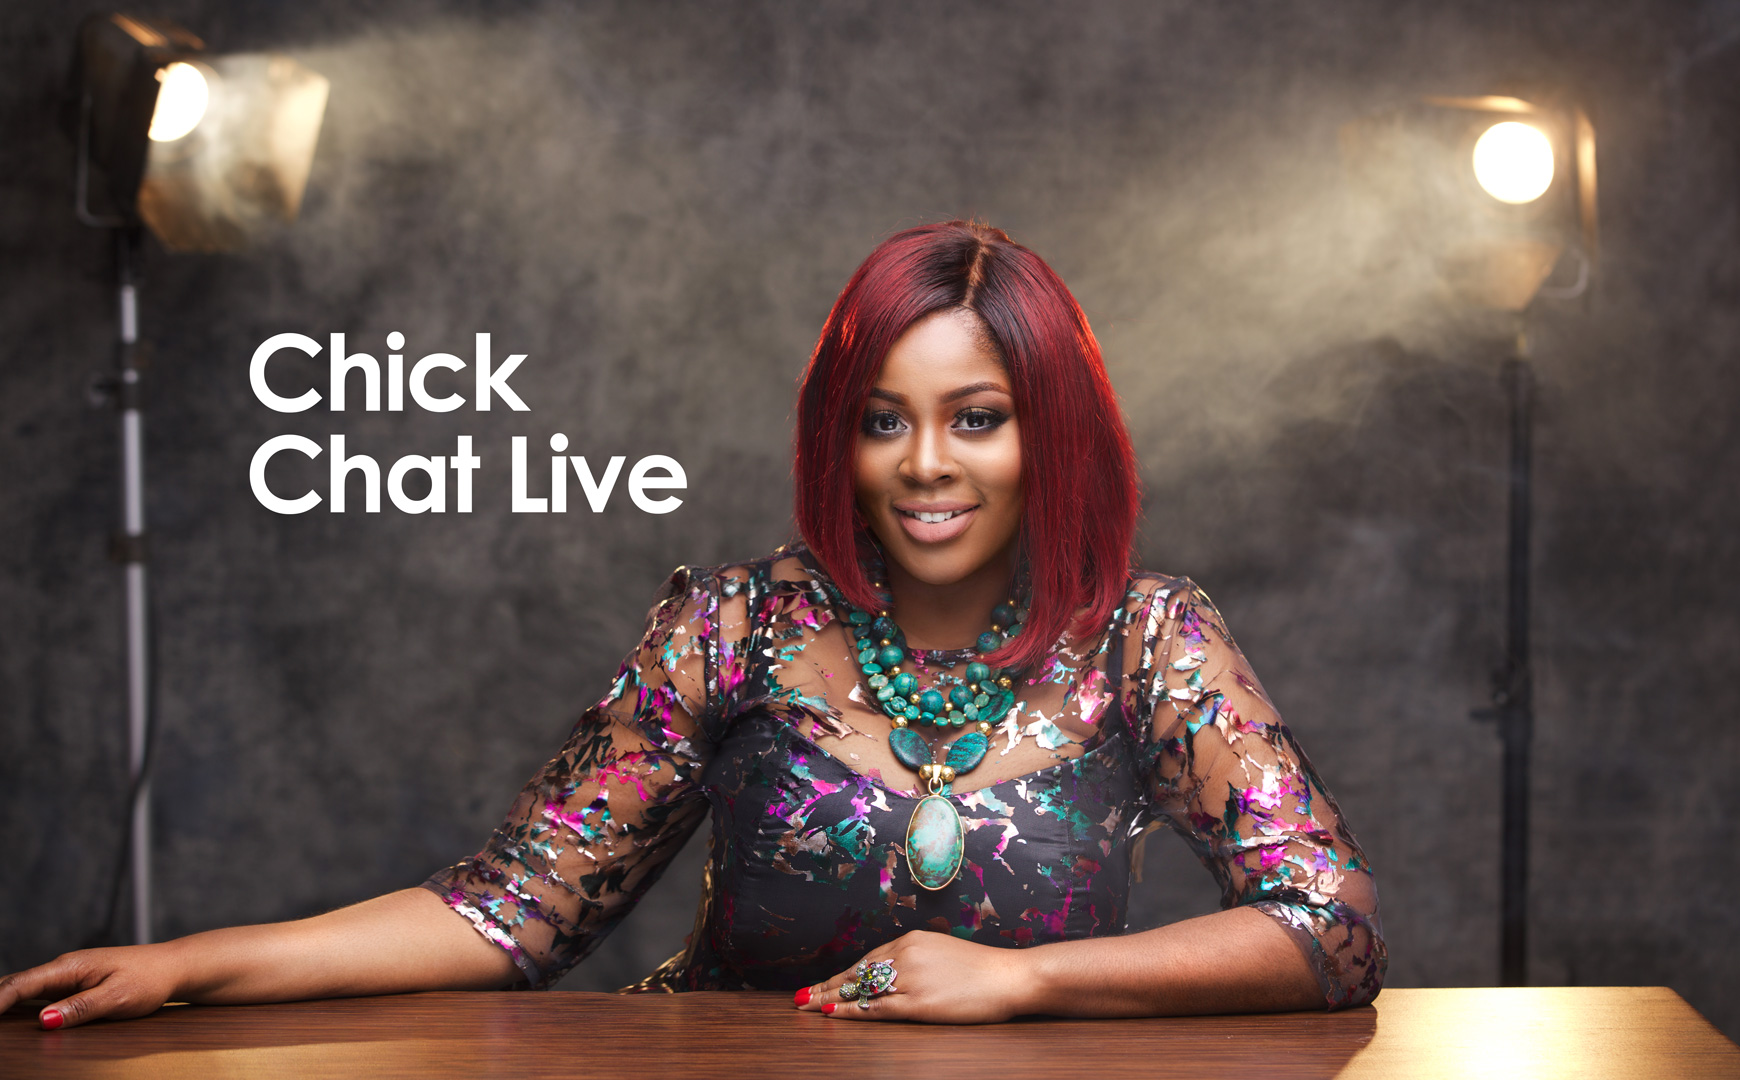 Chick Chat Live